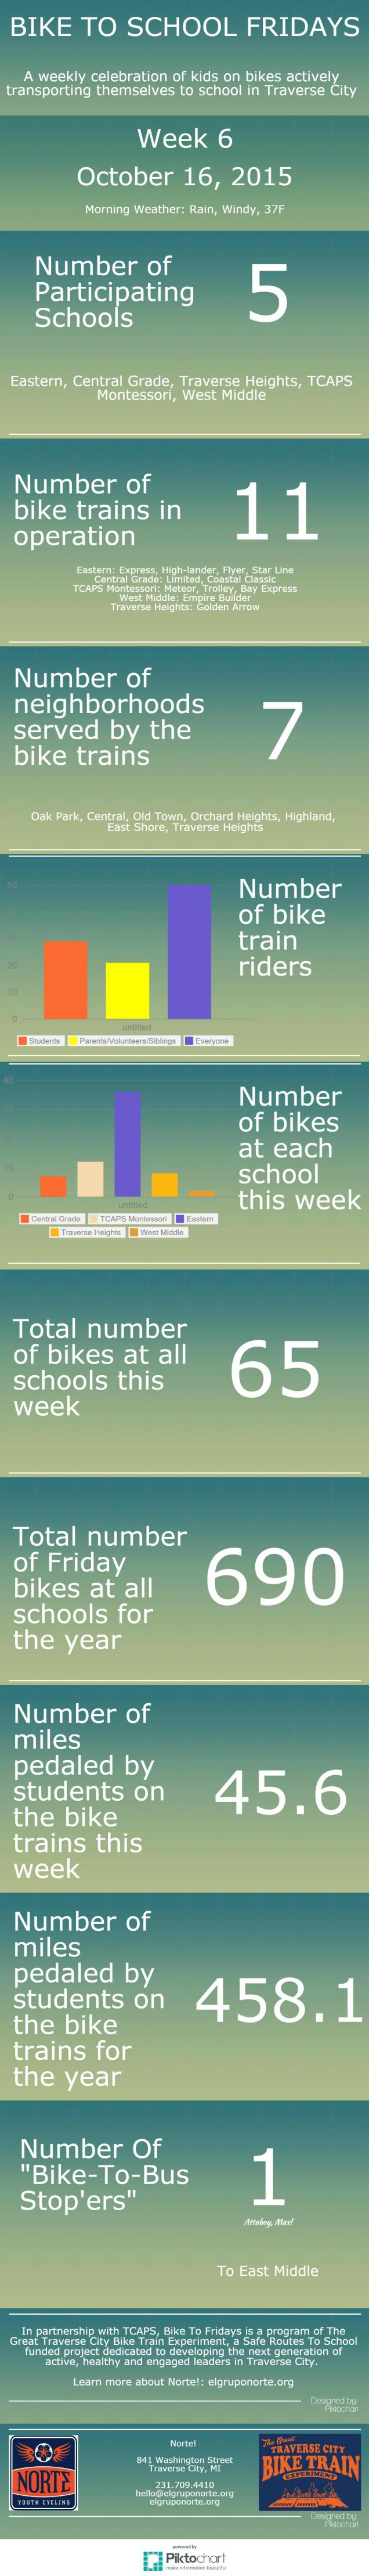 Bike To School Fridays- Week 6